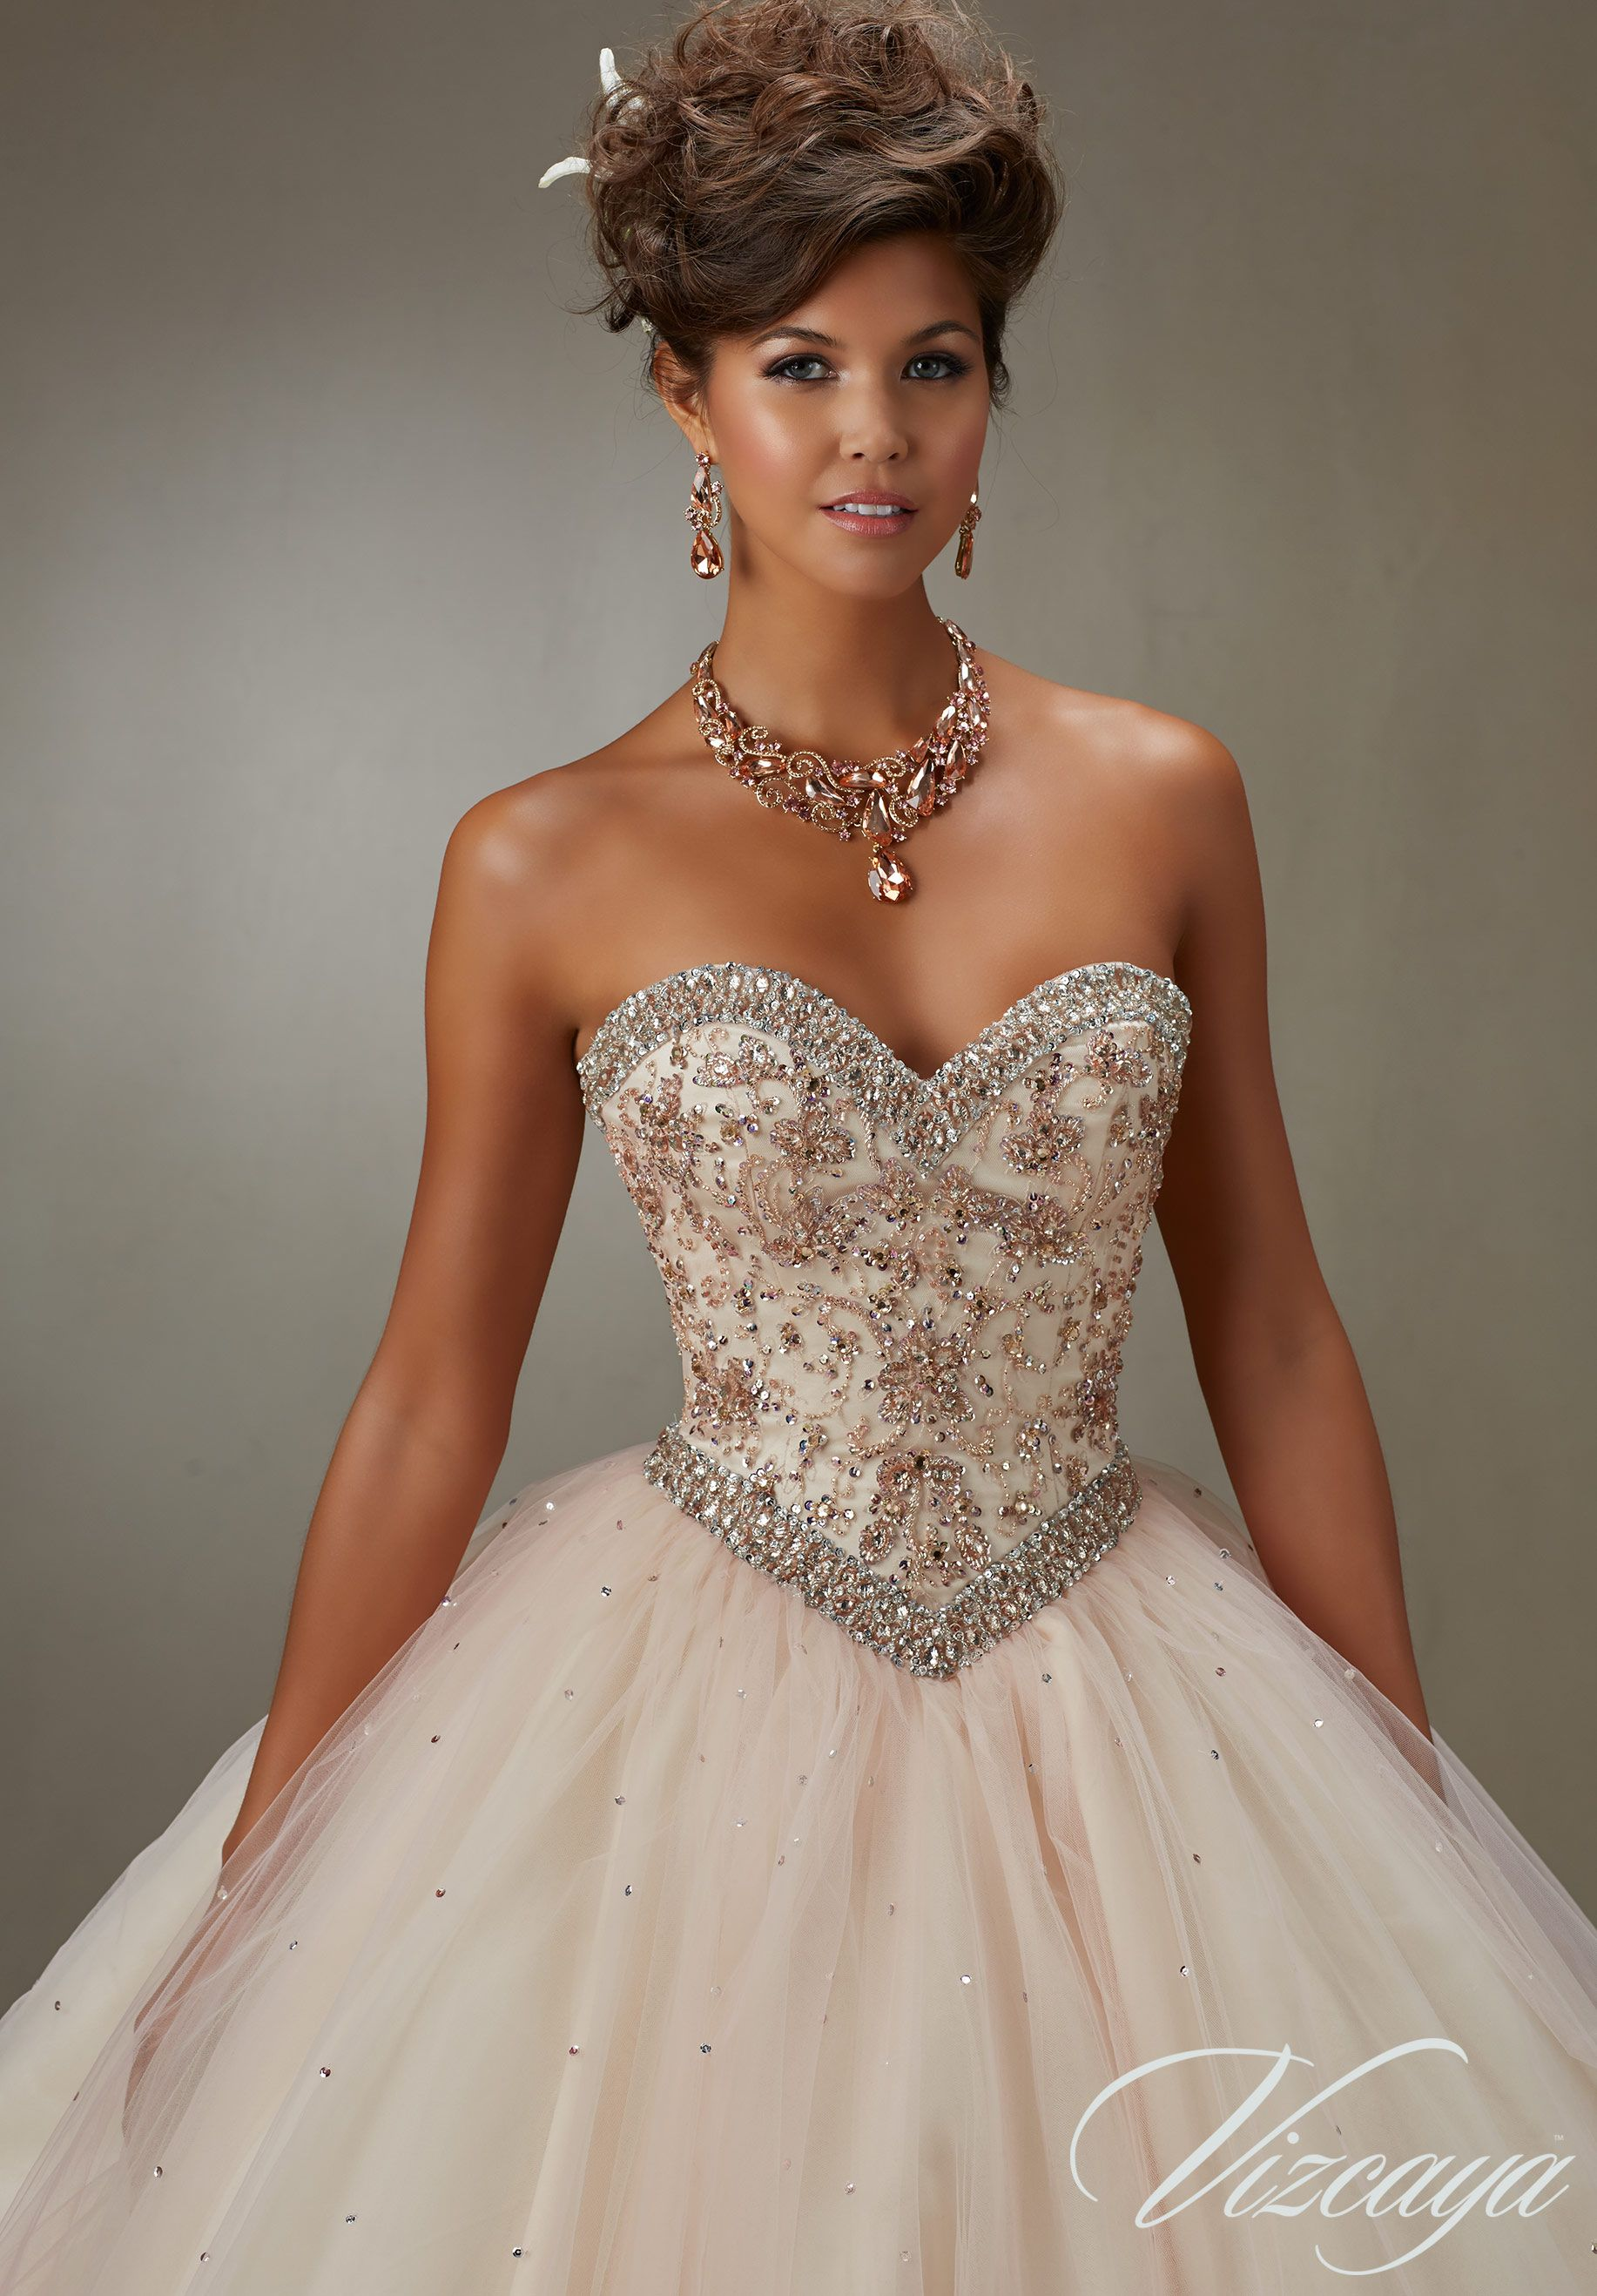 cc732aa8efe Quinceanera Dresses and 15 Dresses by Designer Madeline Gardner. Quinceanera  Dress 89073 Layered Tulle Ball Gown with Embroidery and Jeweled Beading ...